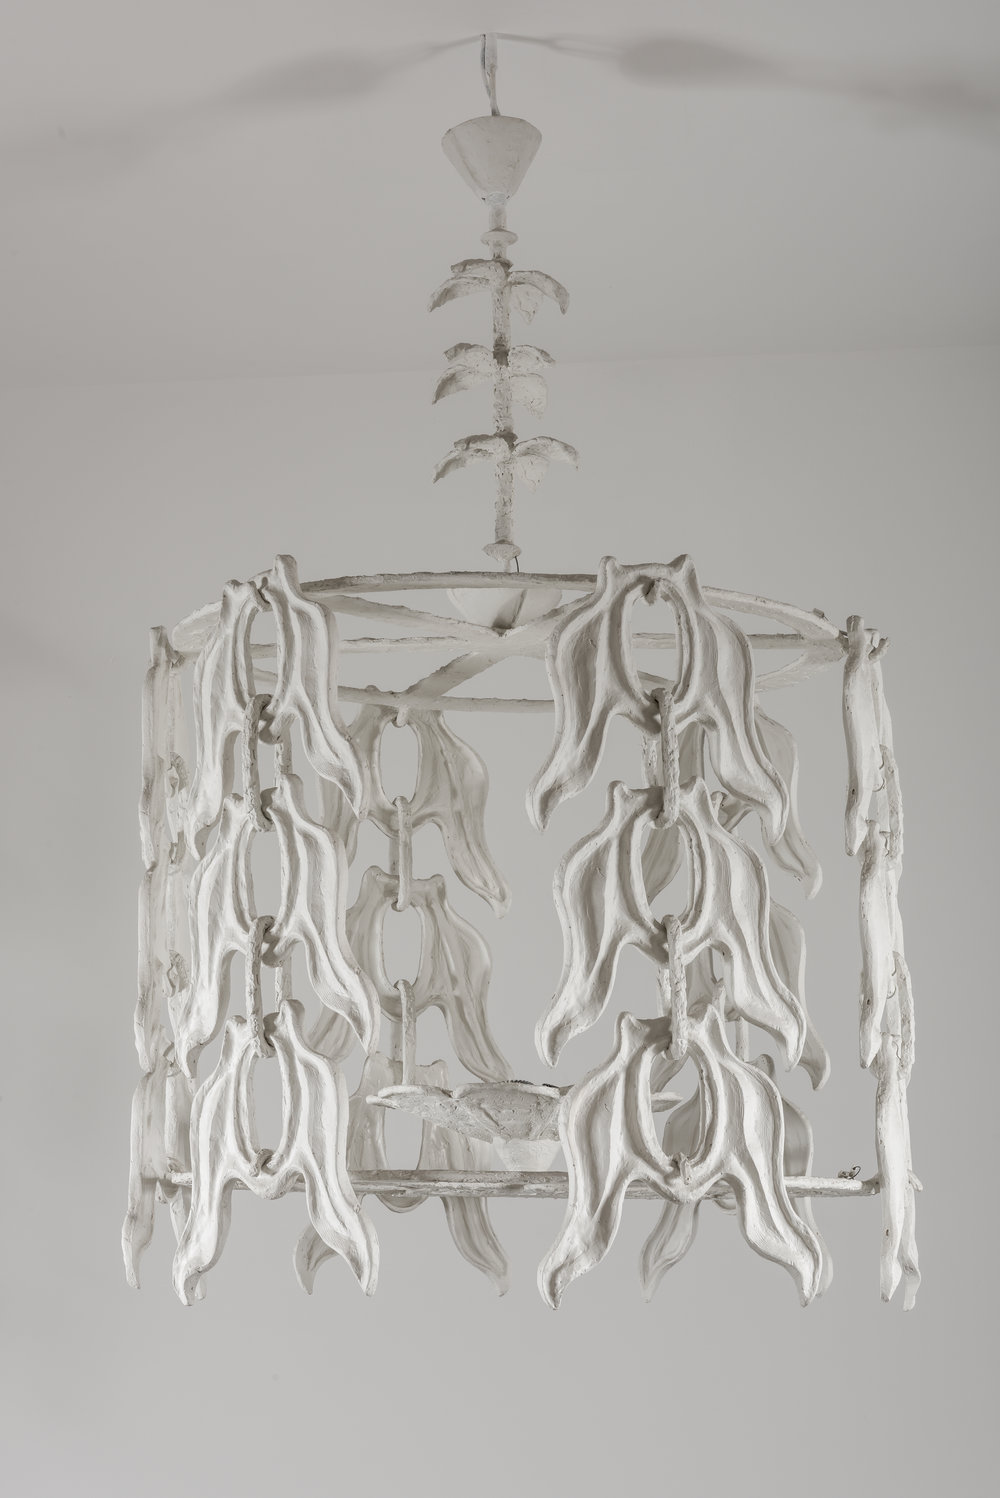 Diego Giacometti (1902-1985)  Pendant light with folliage motive executed at Robert Haligon Studio, Périgny-sur-Yerres, [1983-1985], on display at Musée national Picasso-Paris; white resin, 180 cm height x 130 cm diameter ©Philippe Fuzeau/ Musée national Picasso-Paris